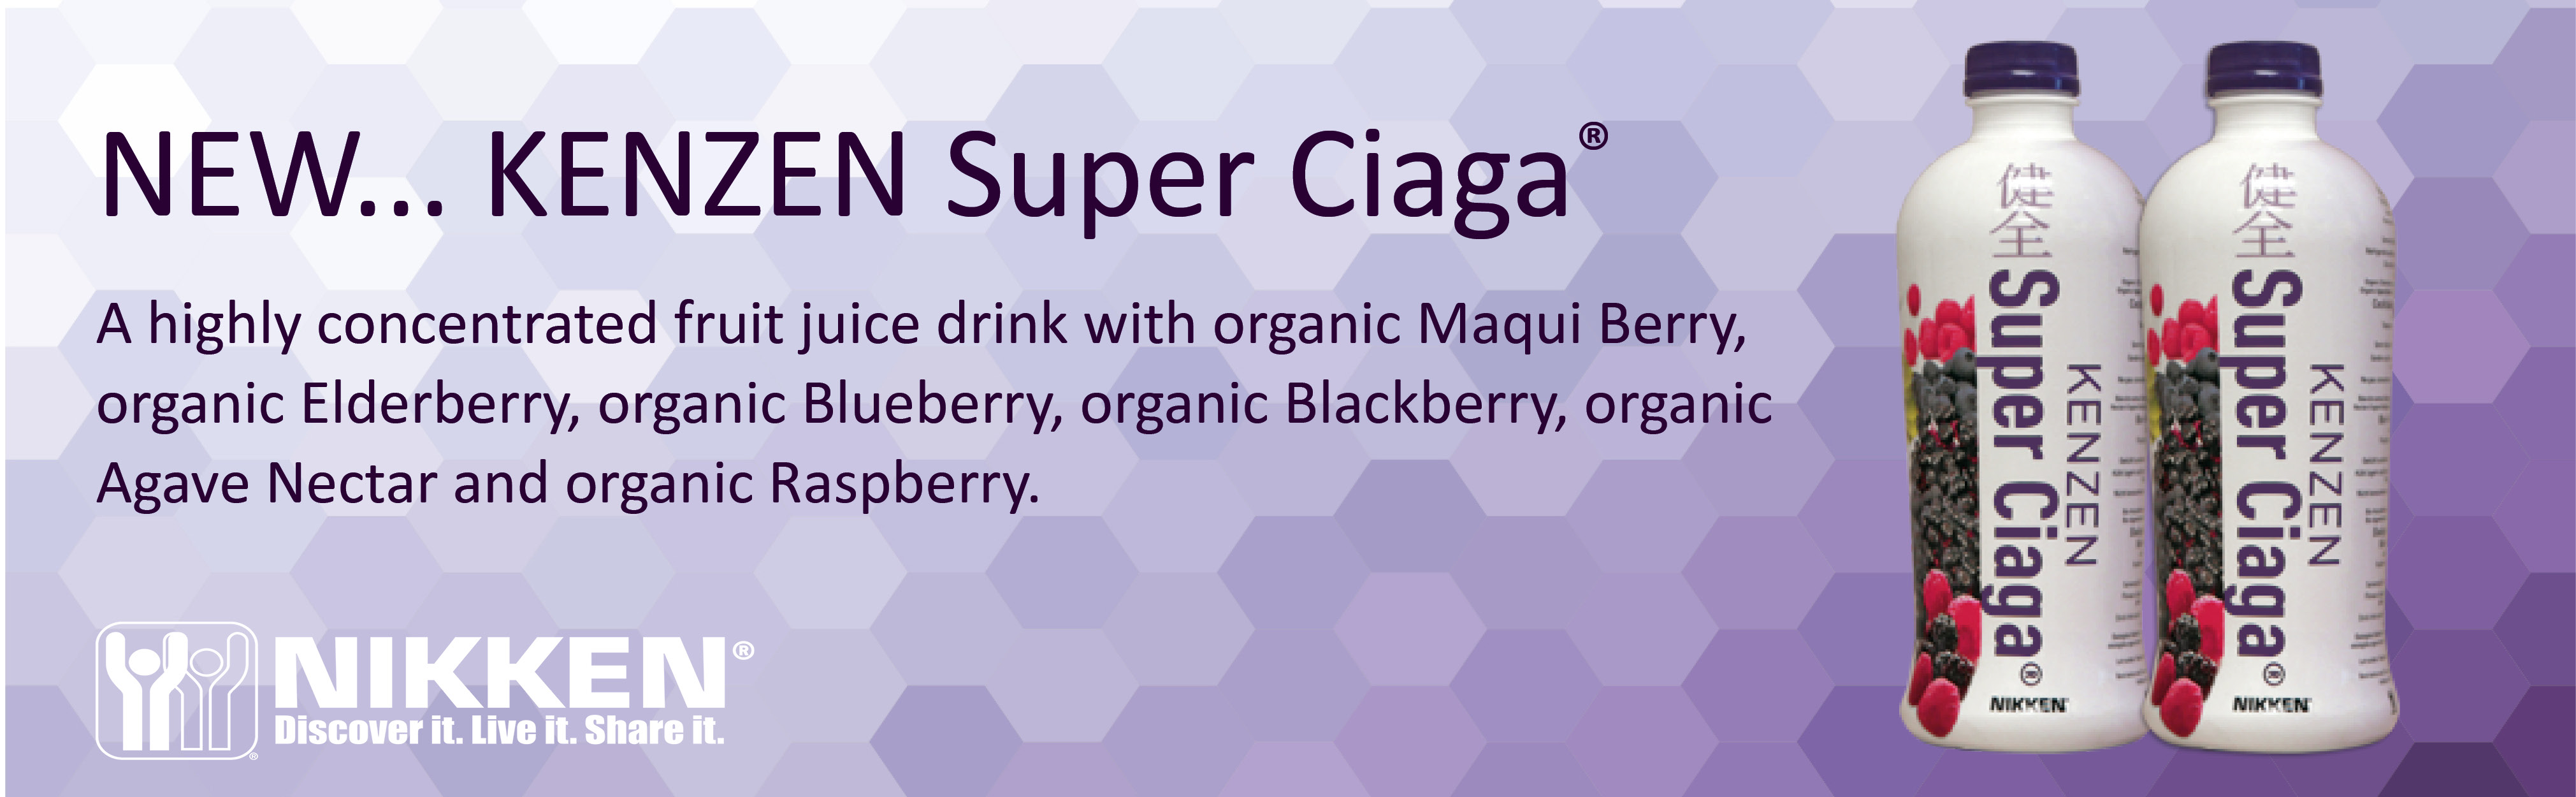 Super Ciaga BLog banner GC